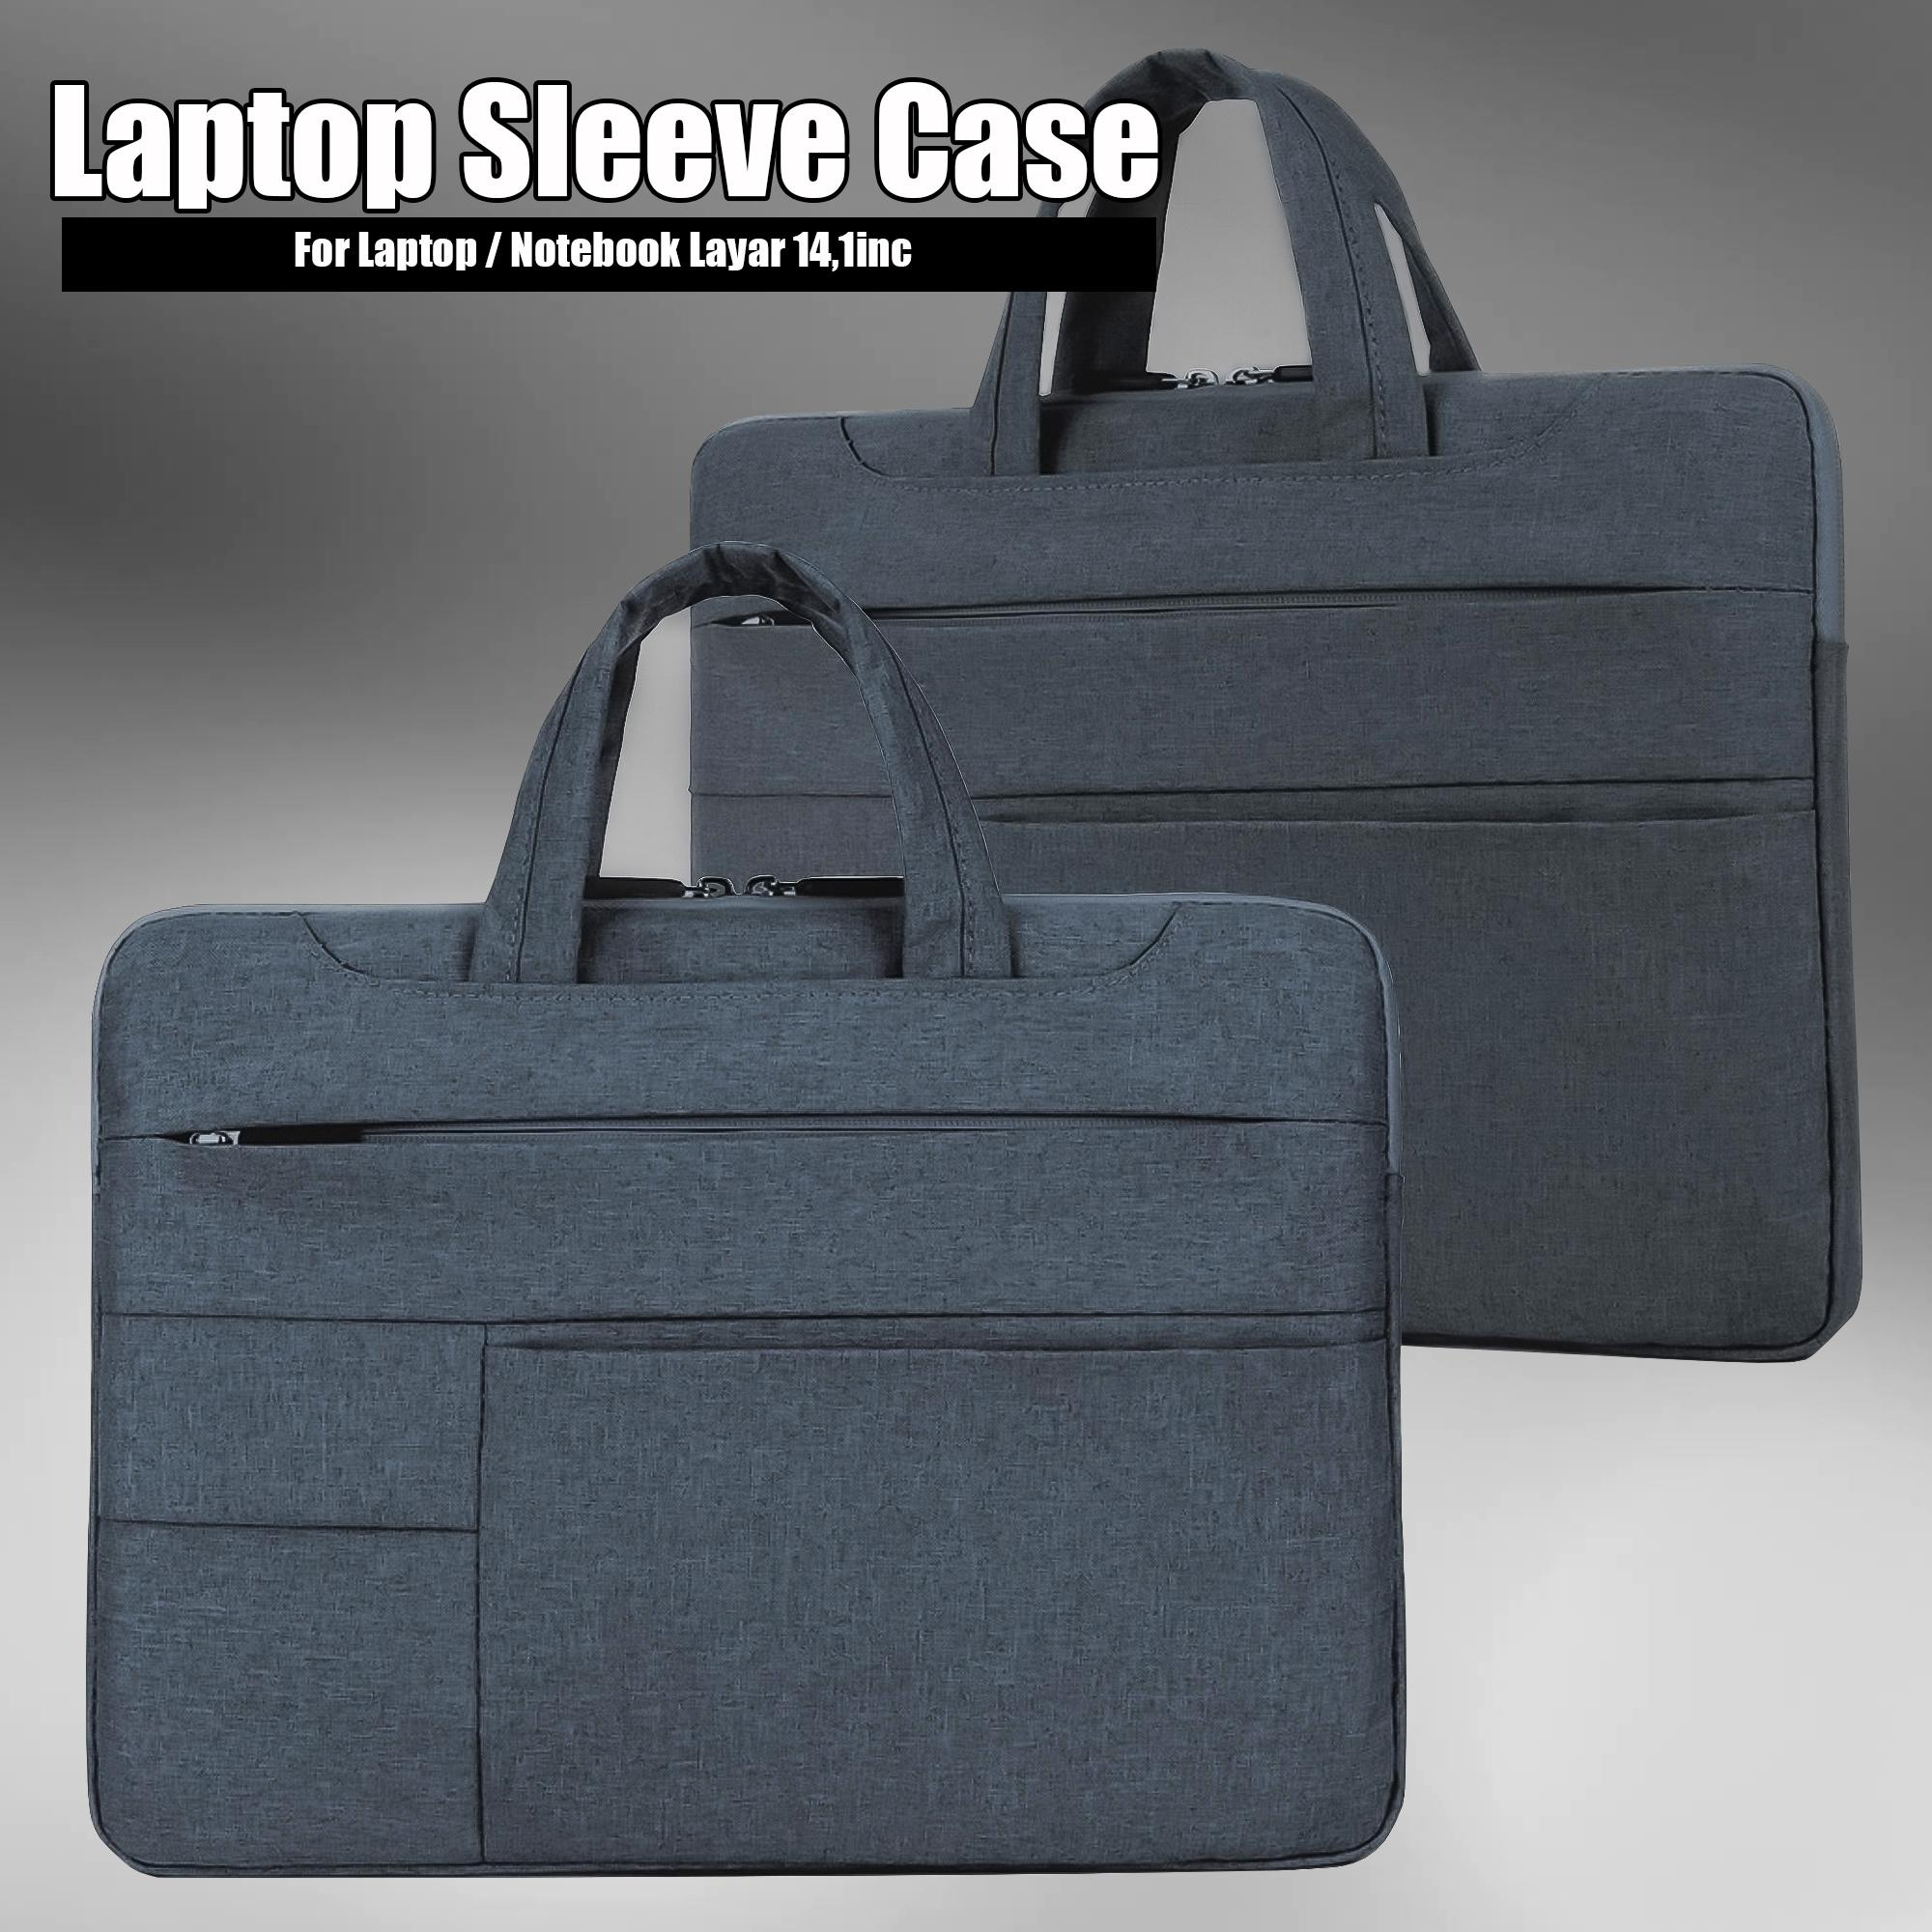 Tas Laptop Import   Sarung Laptop Import   Sleeve Case Import   Multifungsi  SoftCase Laptop Import 157551a4d9